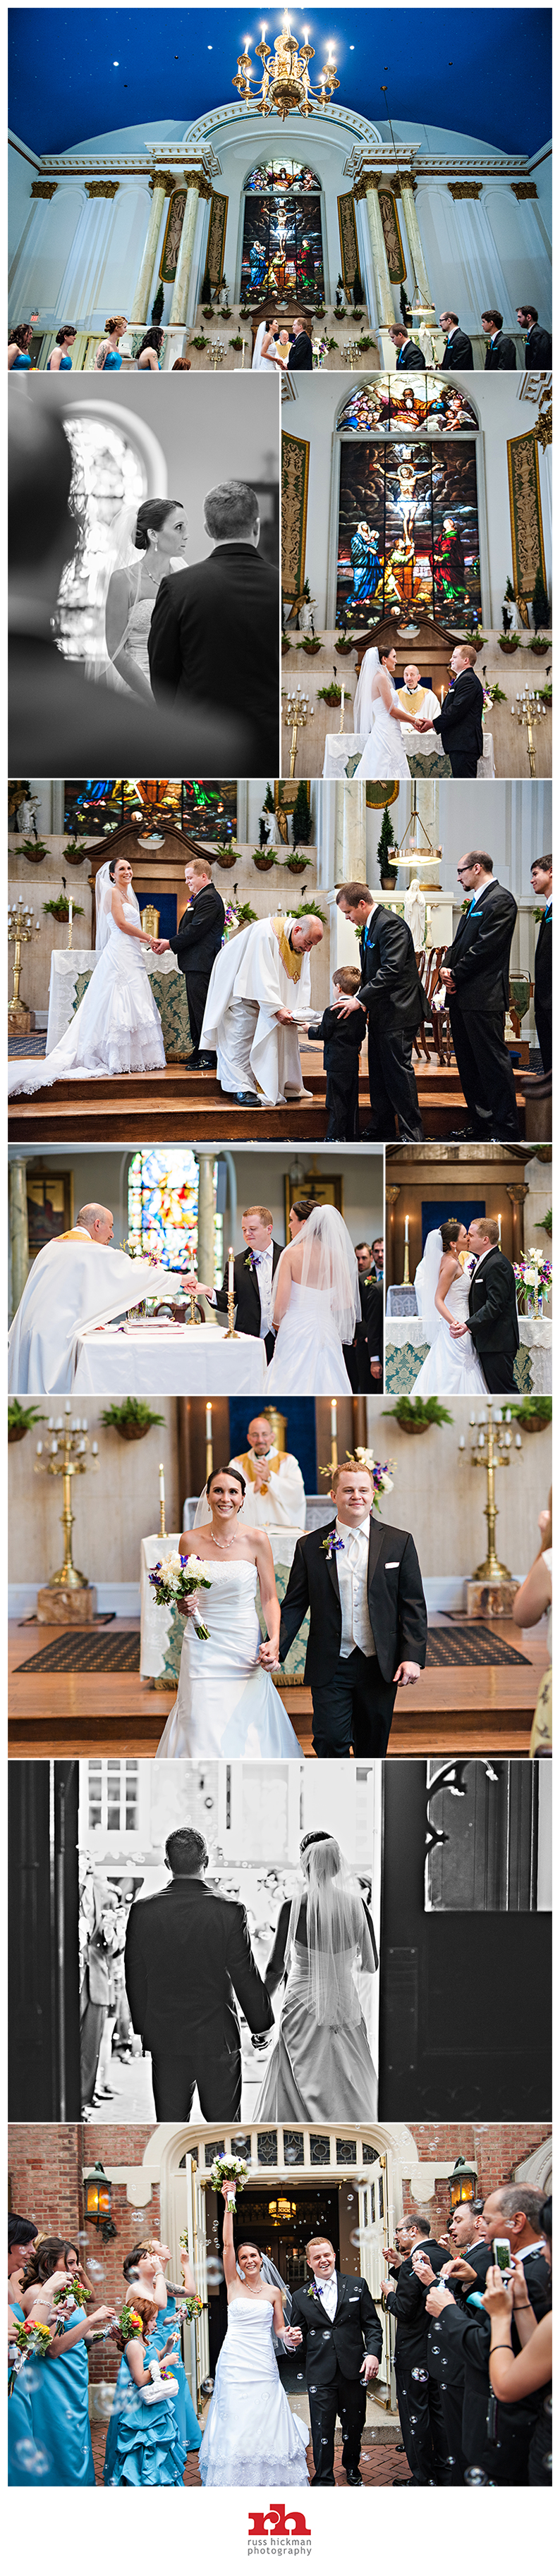 Philadelphia Wedding Photographer SCWB004